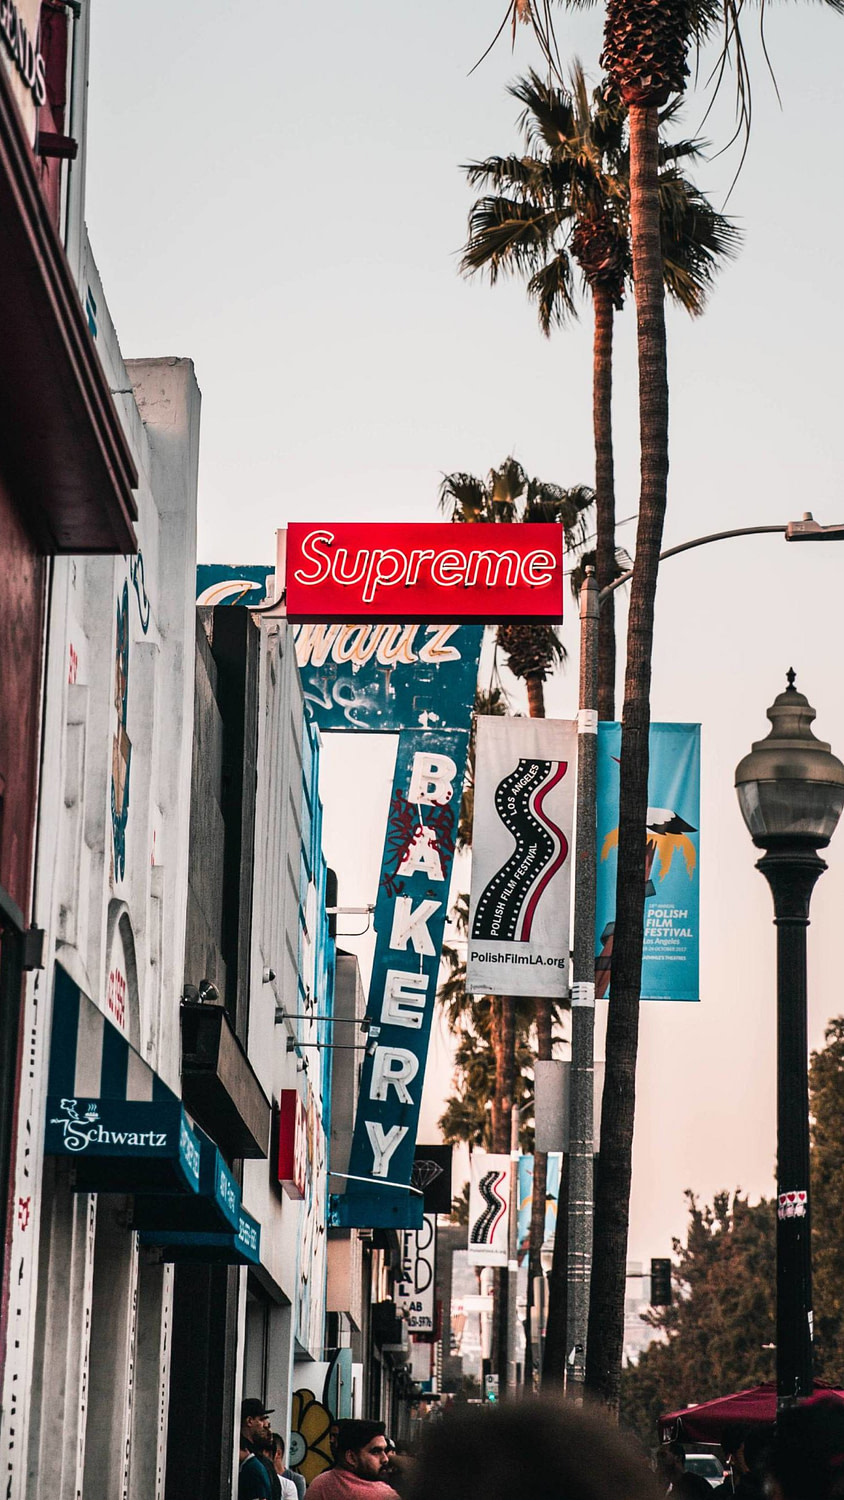 A shot of Sunset Strip with the Supreme sign out front.